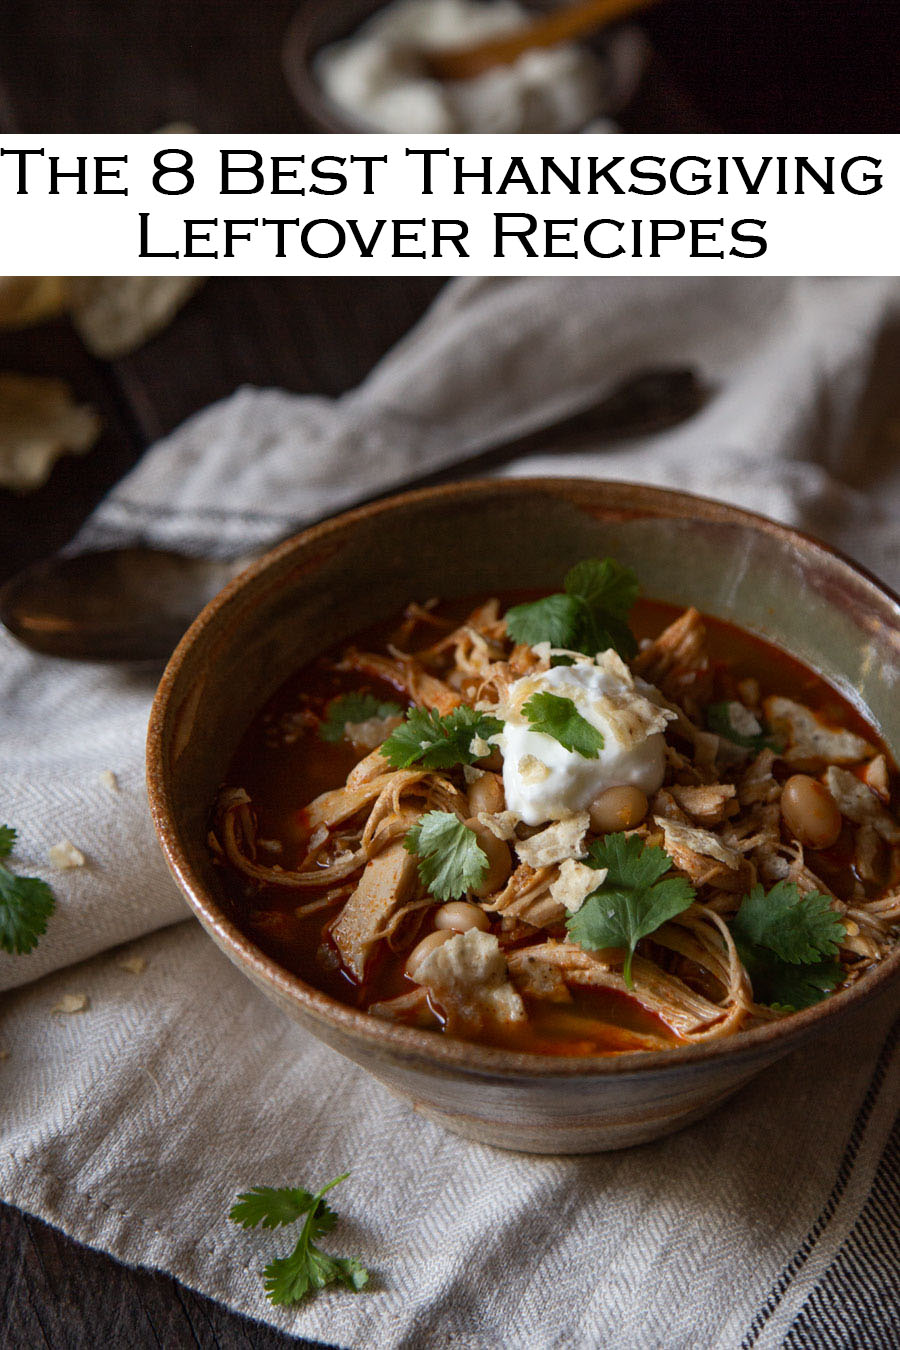 Best Thanksgiving Leftover Recipes. Delicious and easy idea for leftover turkey, leftover cranberry sauces, leftover pumpkin puree, and leftover roasted/baked sweet potatoes! #thanksgiving #blackfriday